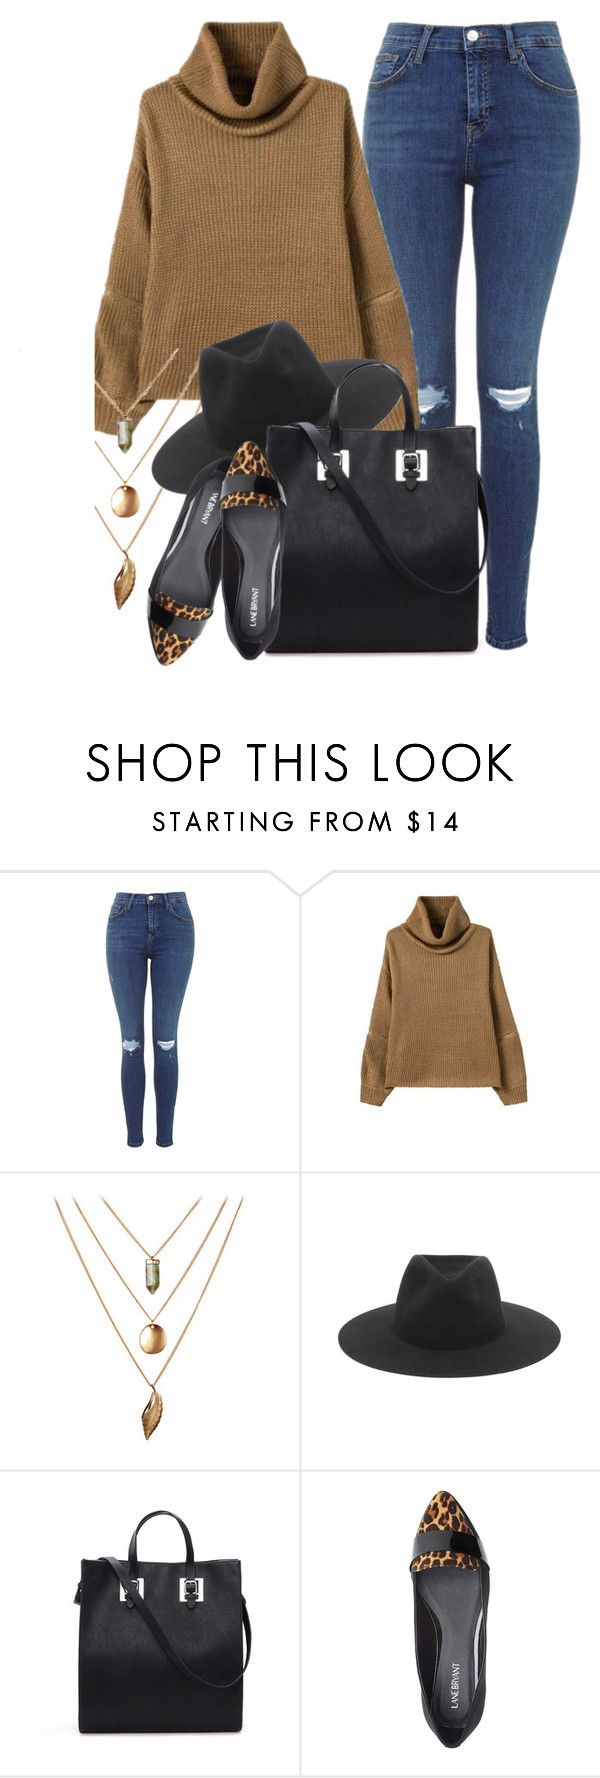 """Leo Print"" by genuine-people ❤ liked on Polyvore featuring rag & bone and Fall"